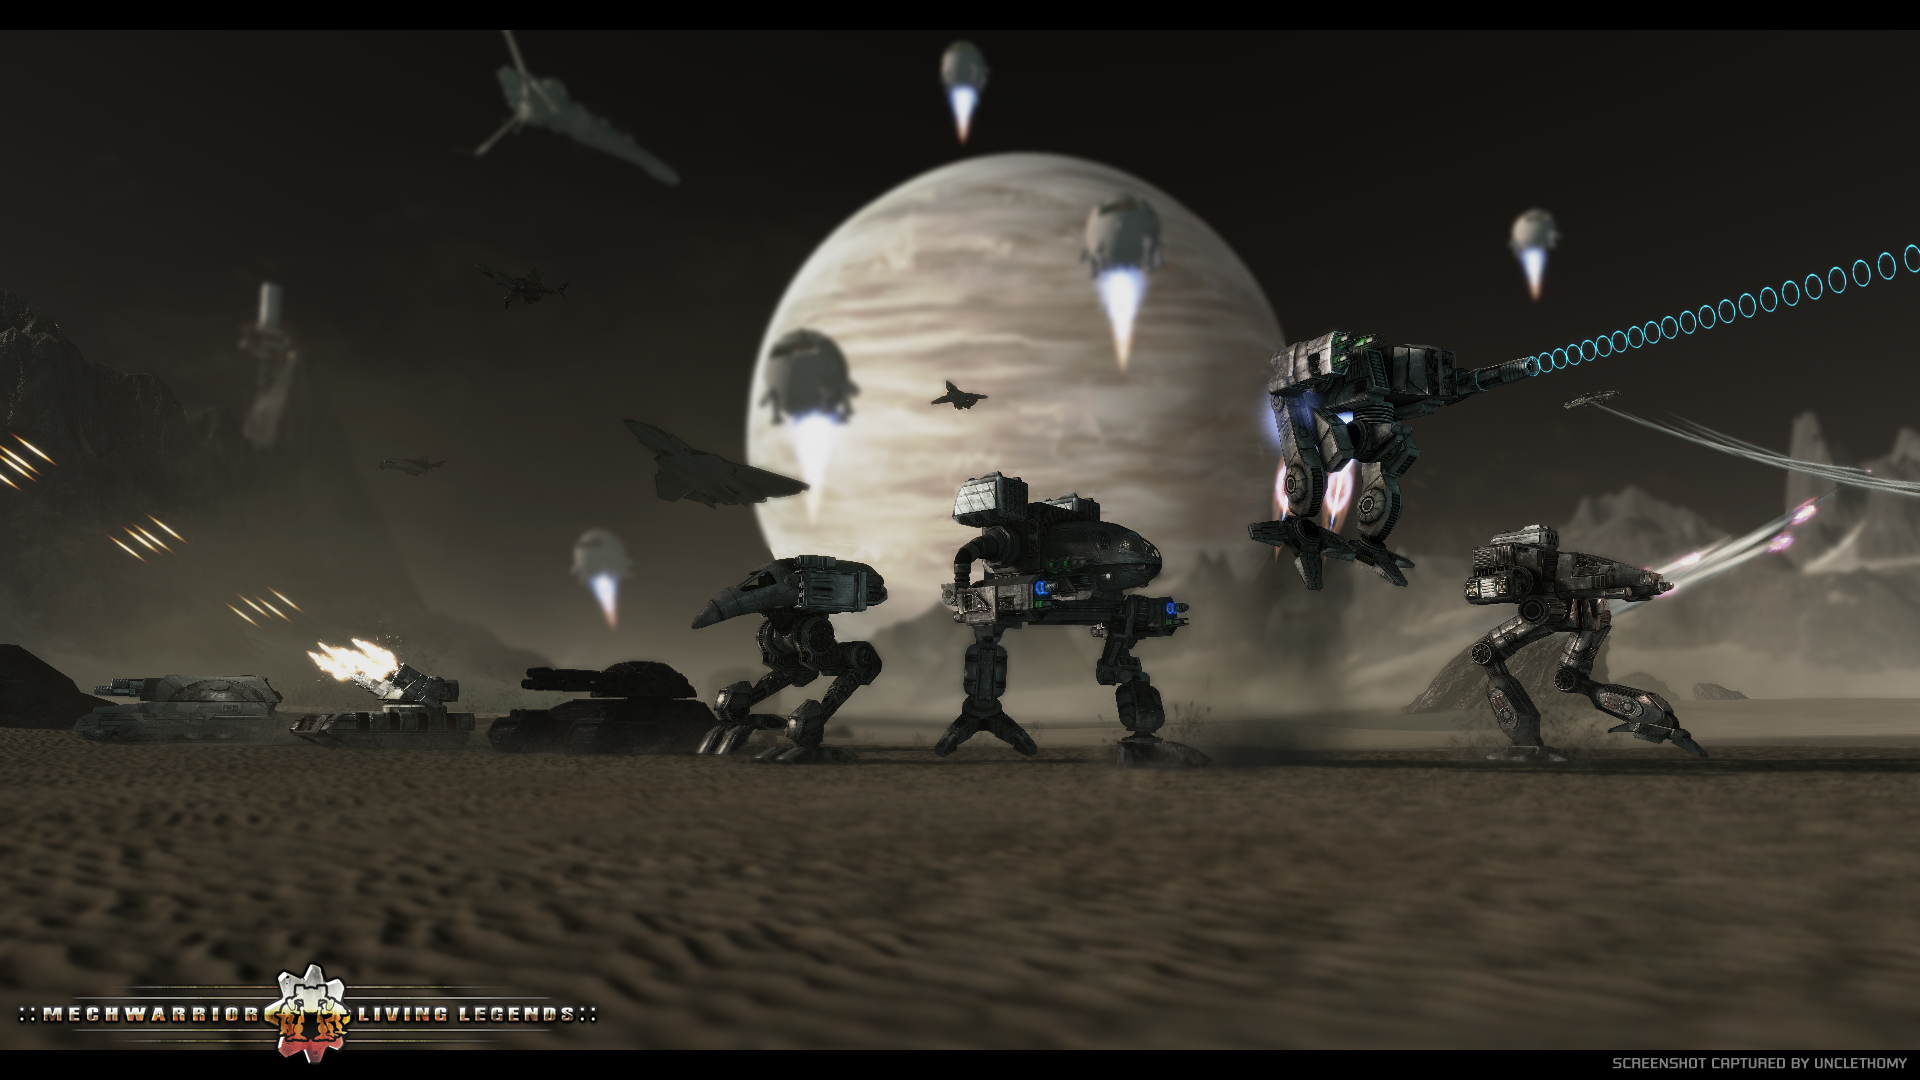 Mechwarrior 2 Wallpaper Servers